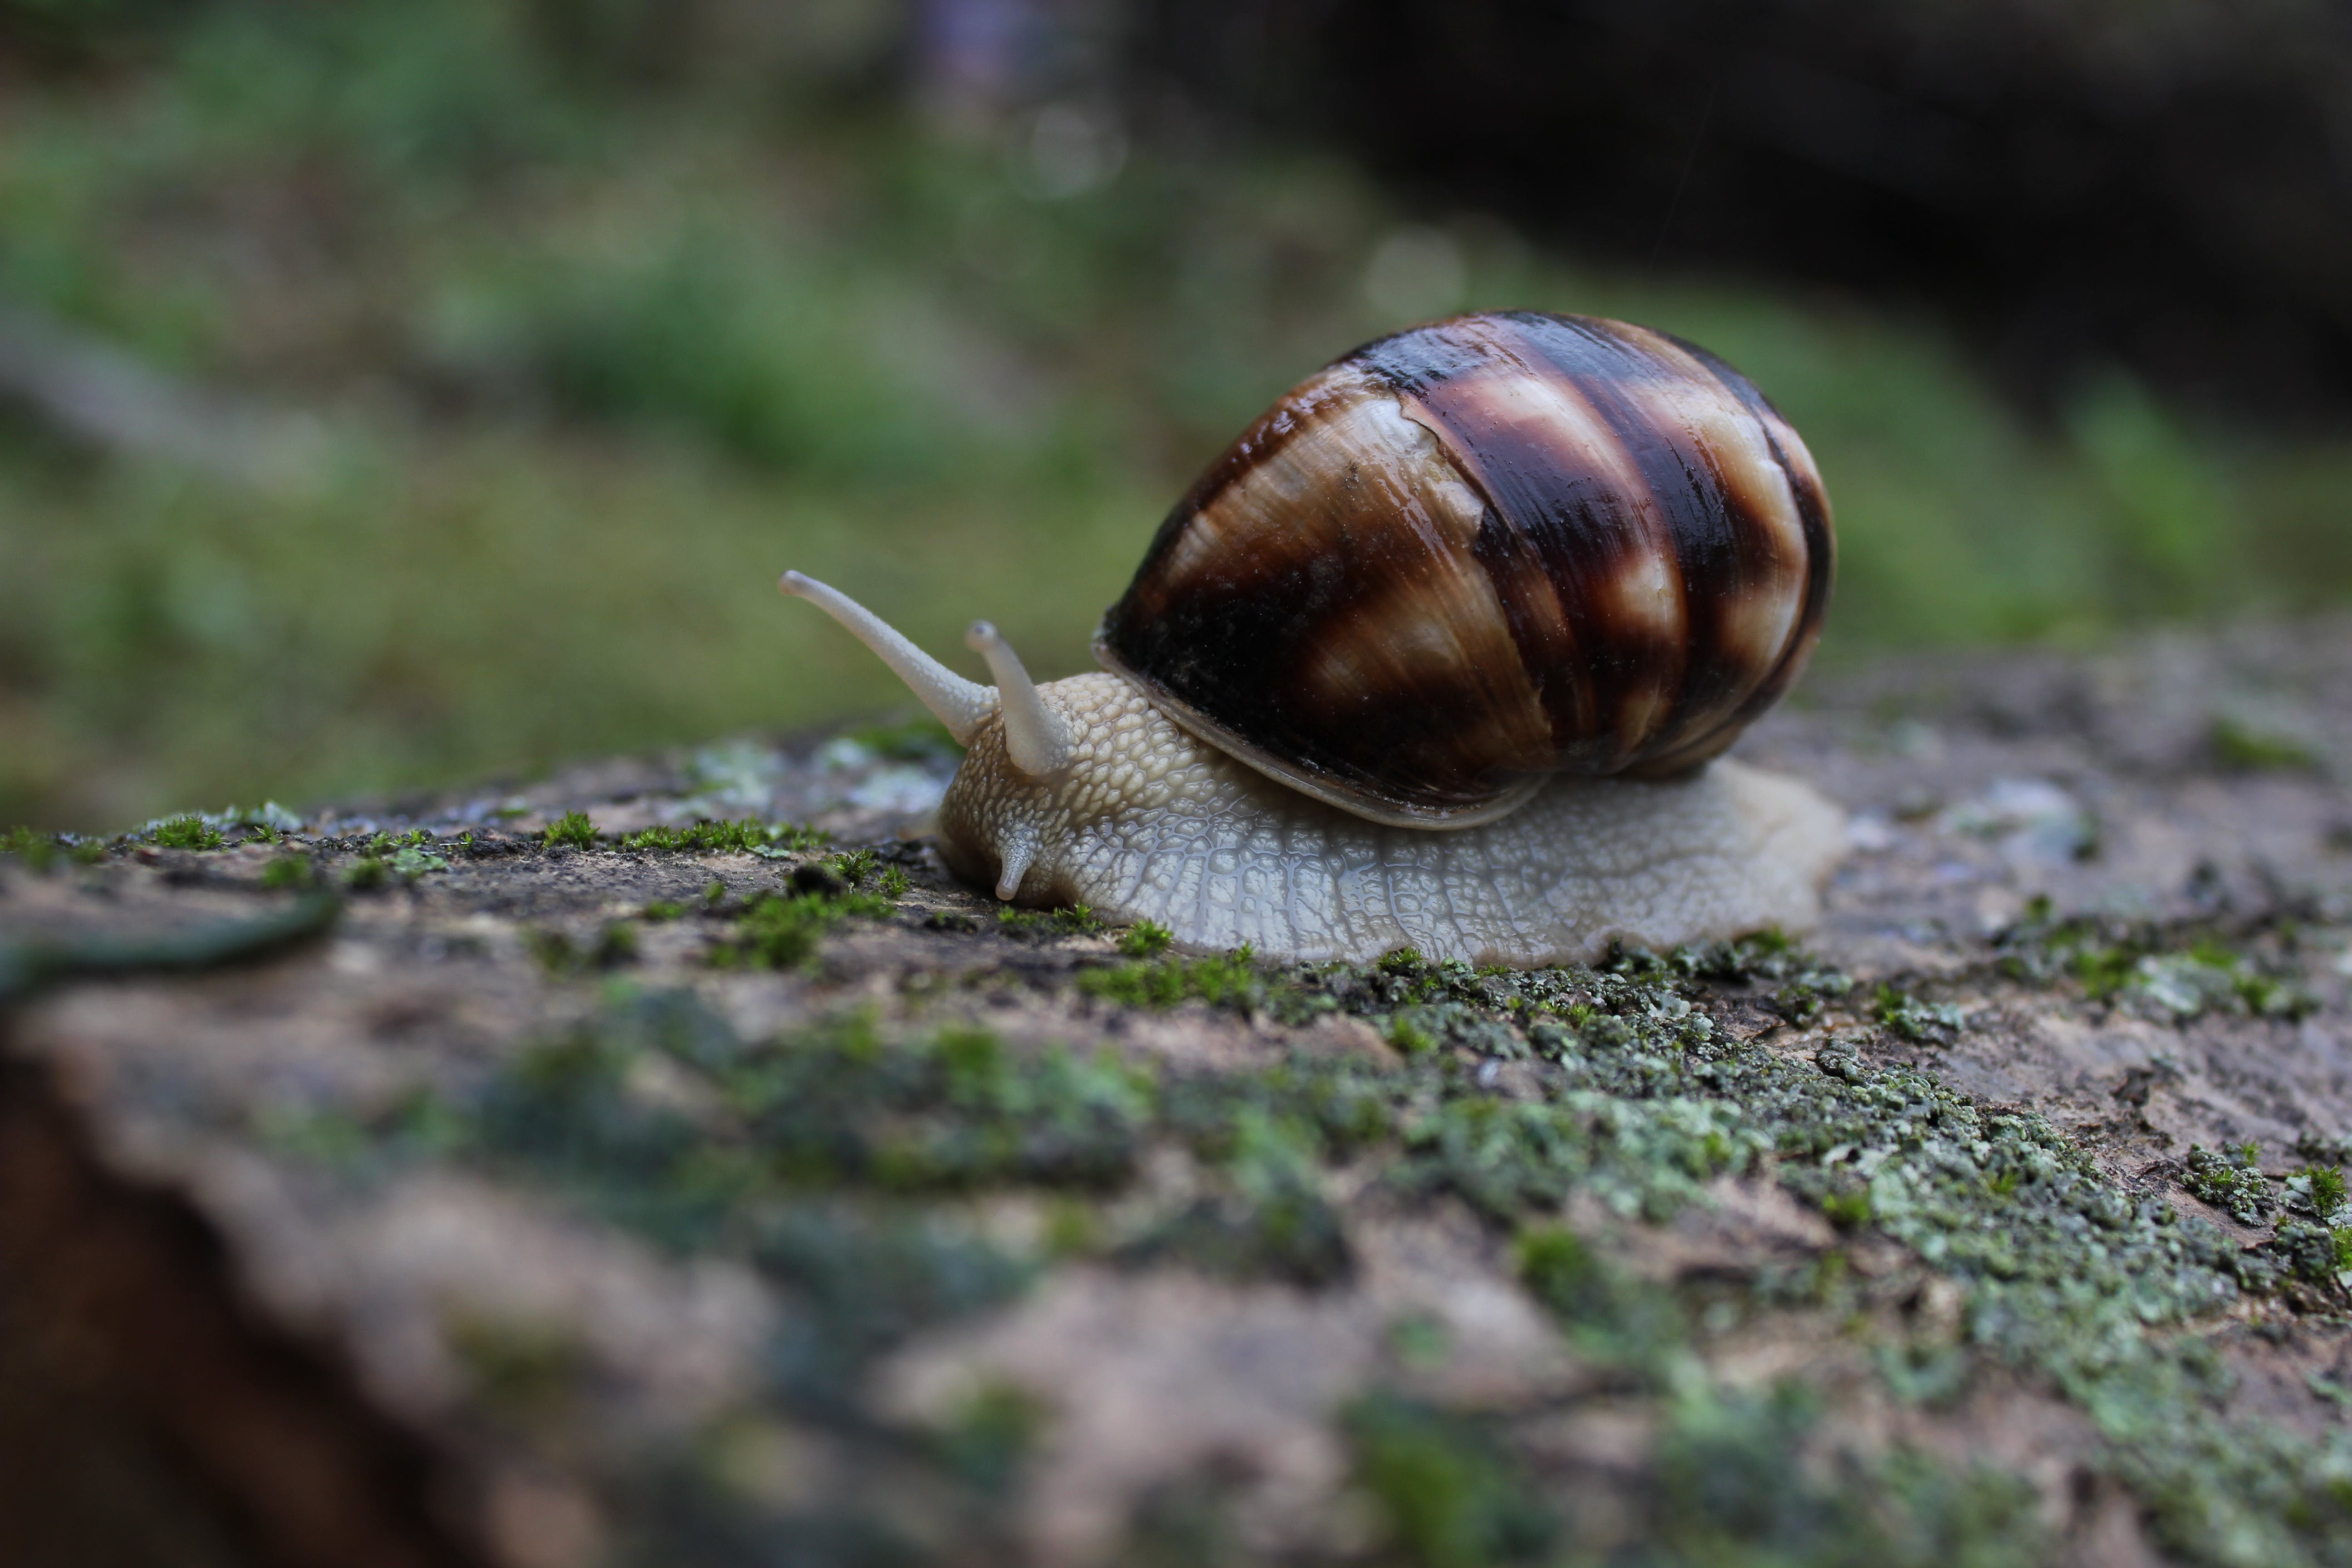 Shallow Focus Photography of Brown and White Snail on Moss